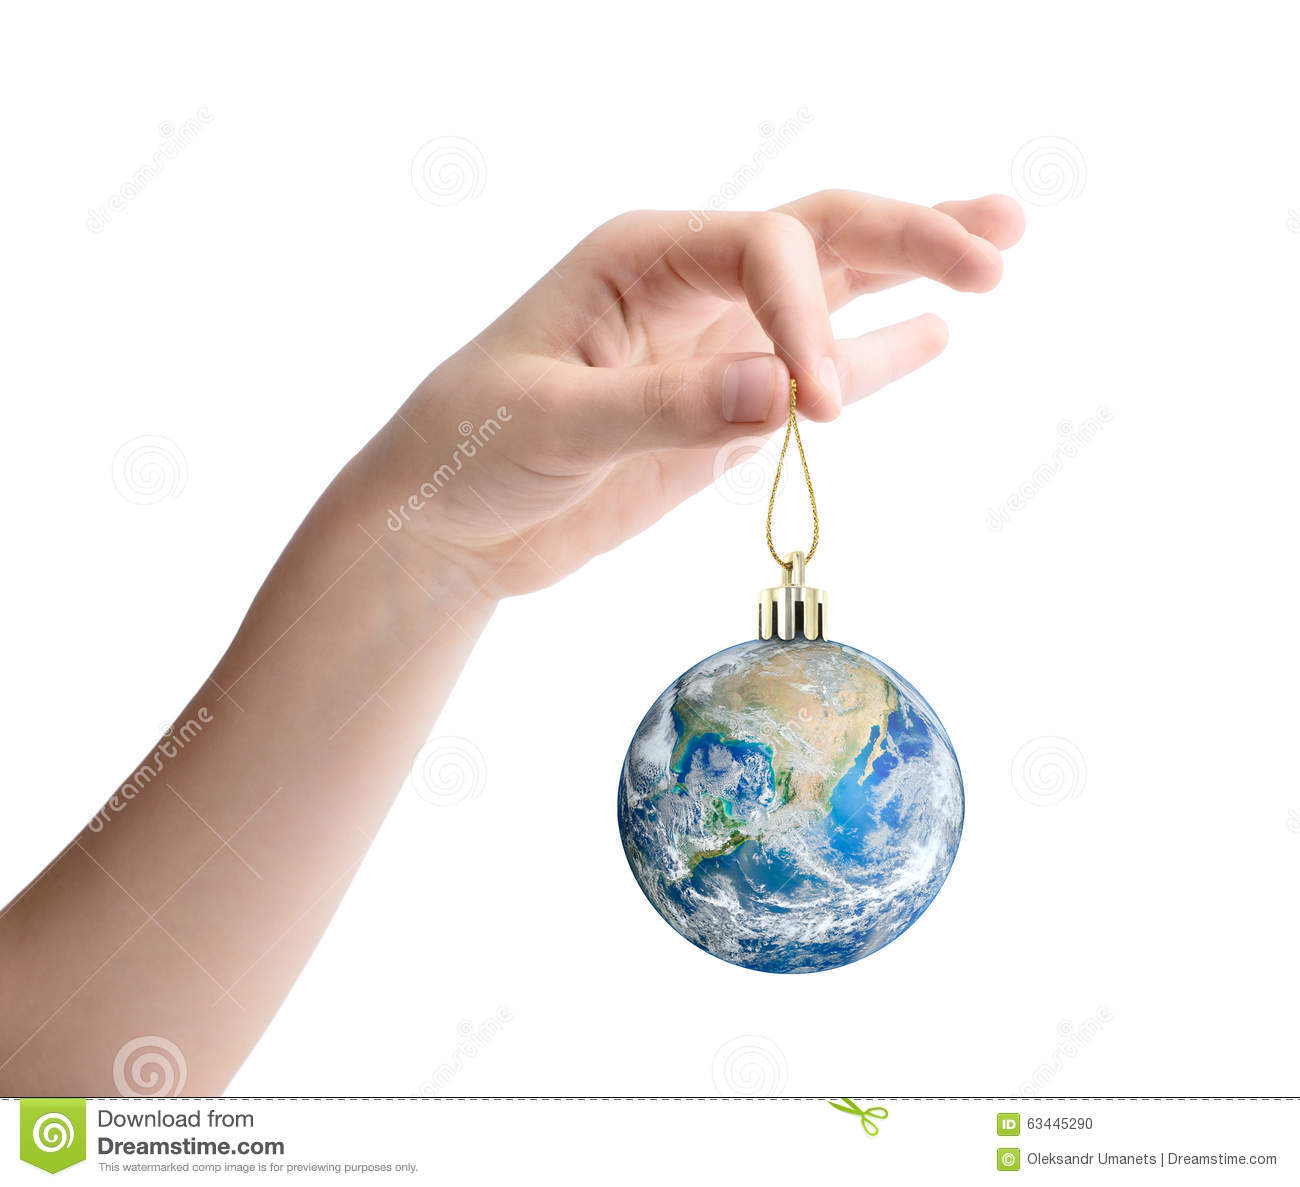 Female hand holding the planet Earth as a Christmas toy. Elements of this image furnished by NASA